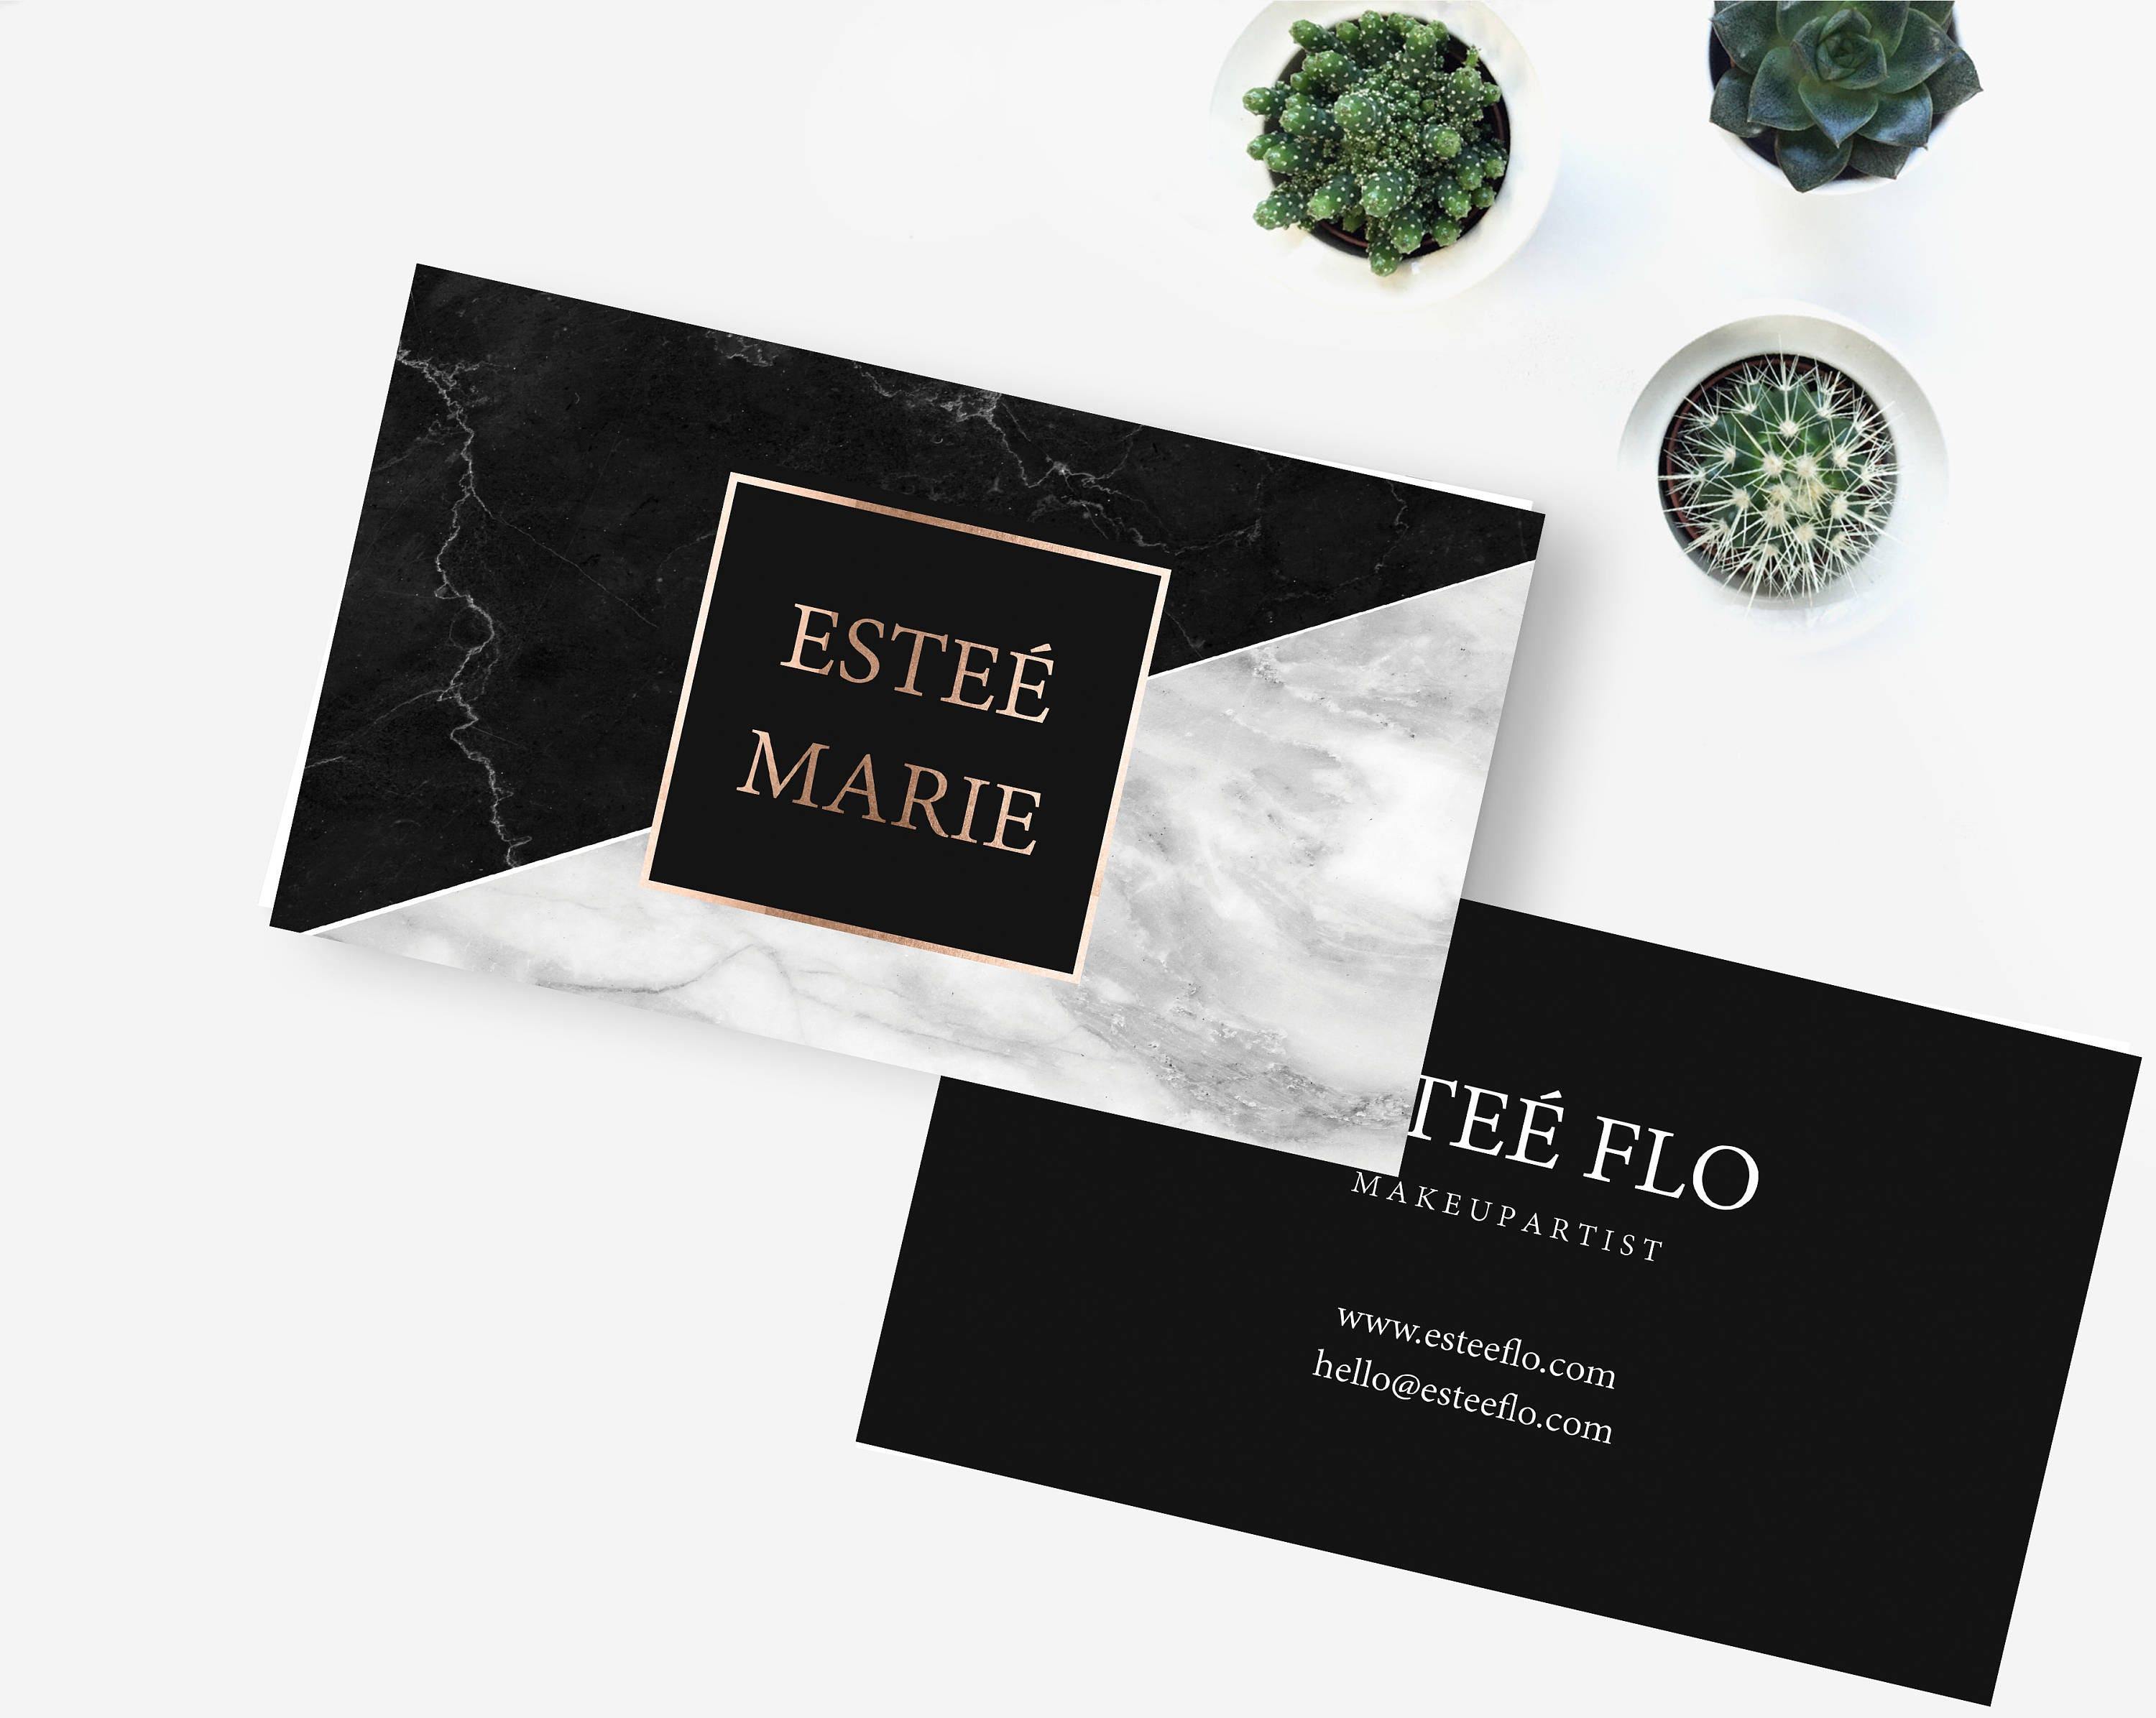 Black marble business cards, Black marble and grey marble business ...